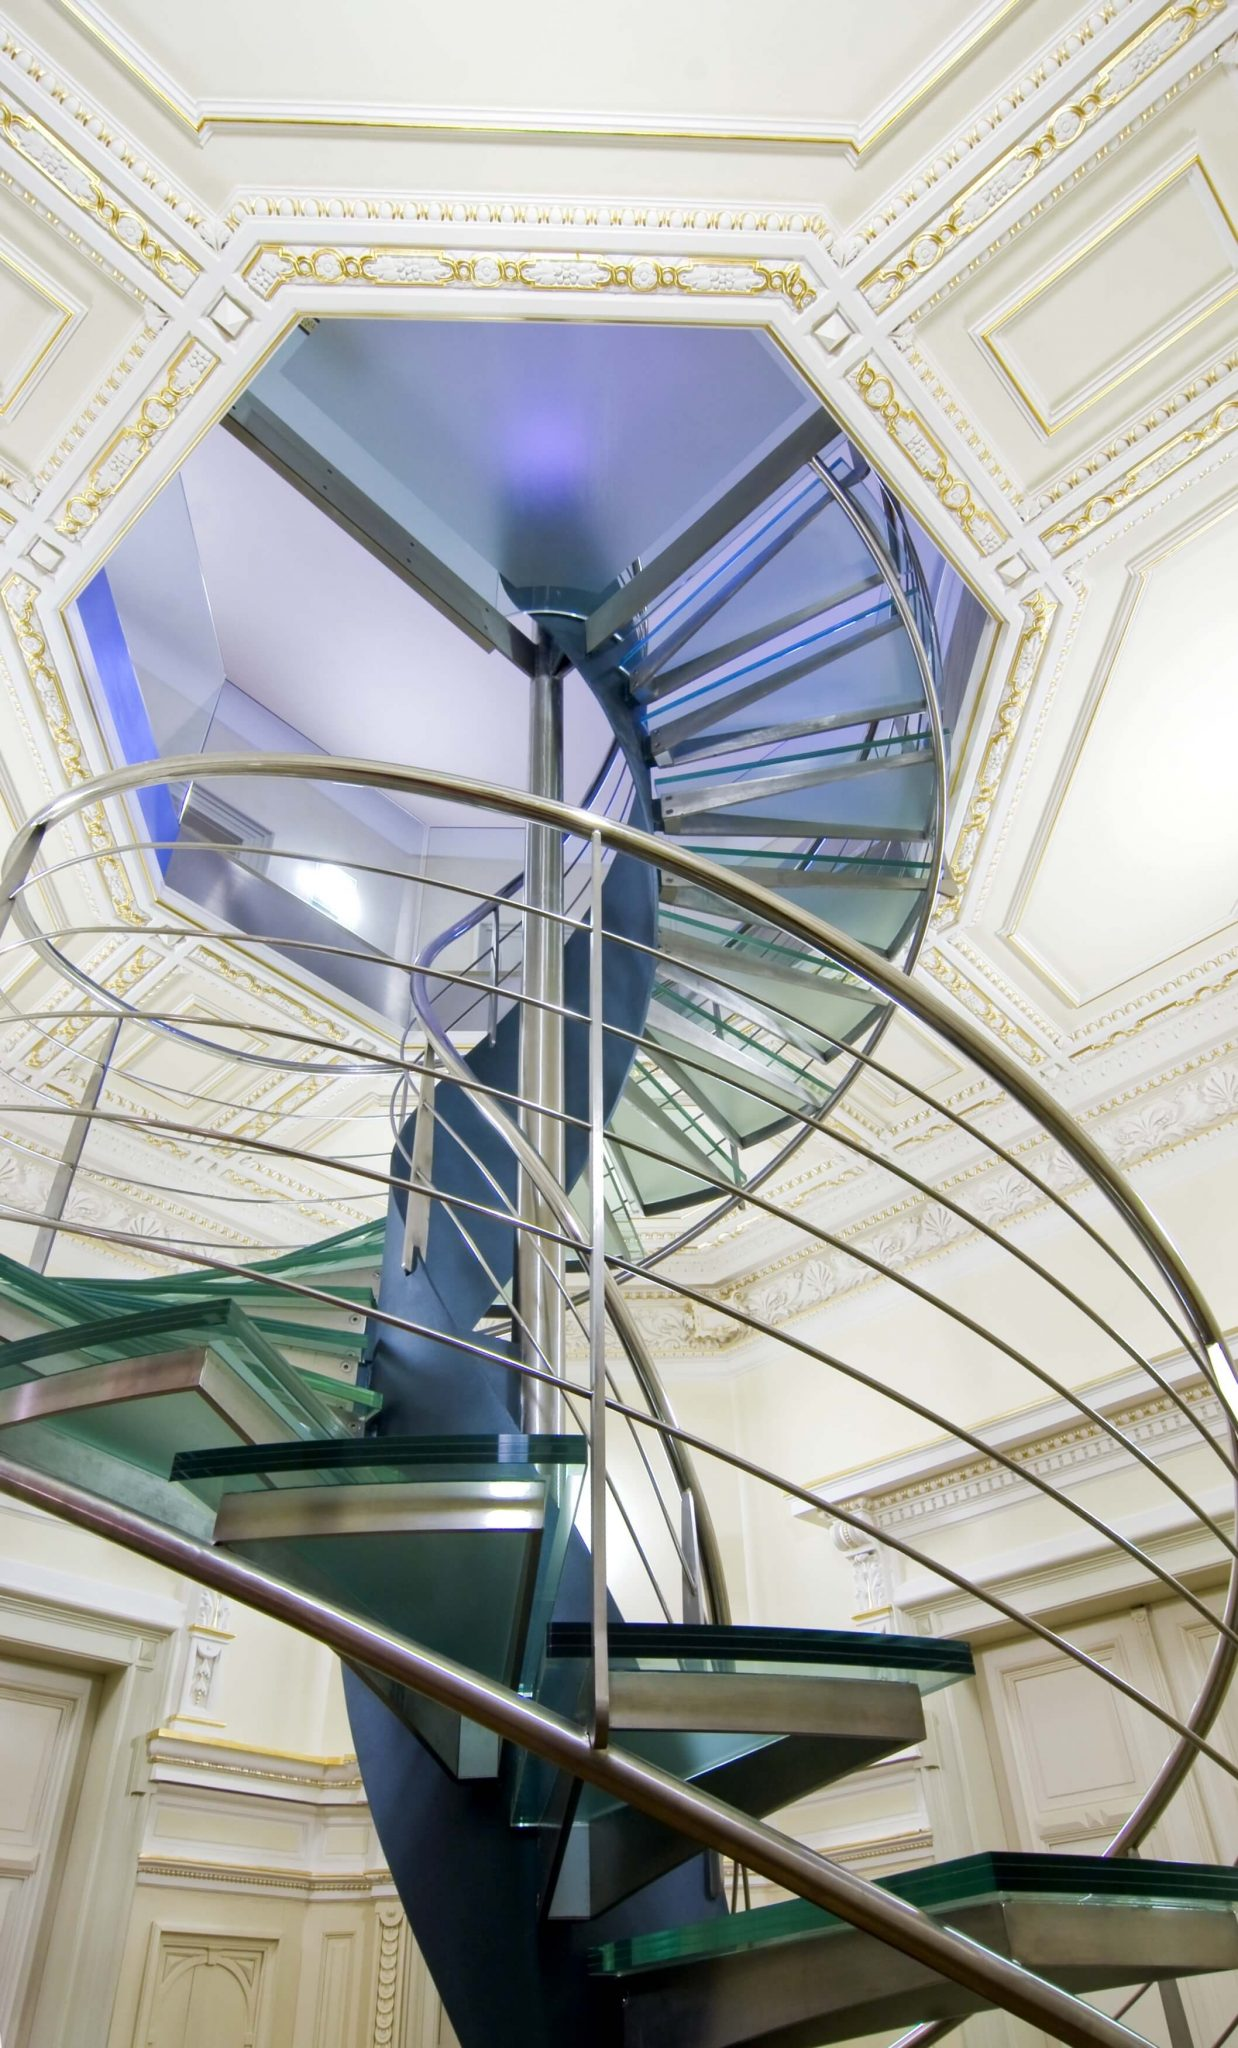 Spiral glass and steel staircase climbing to top of ornate dome room.